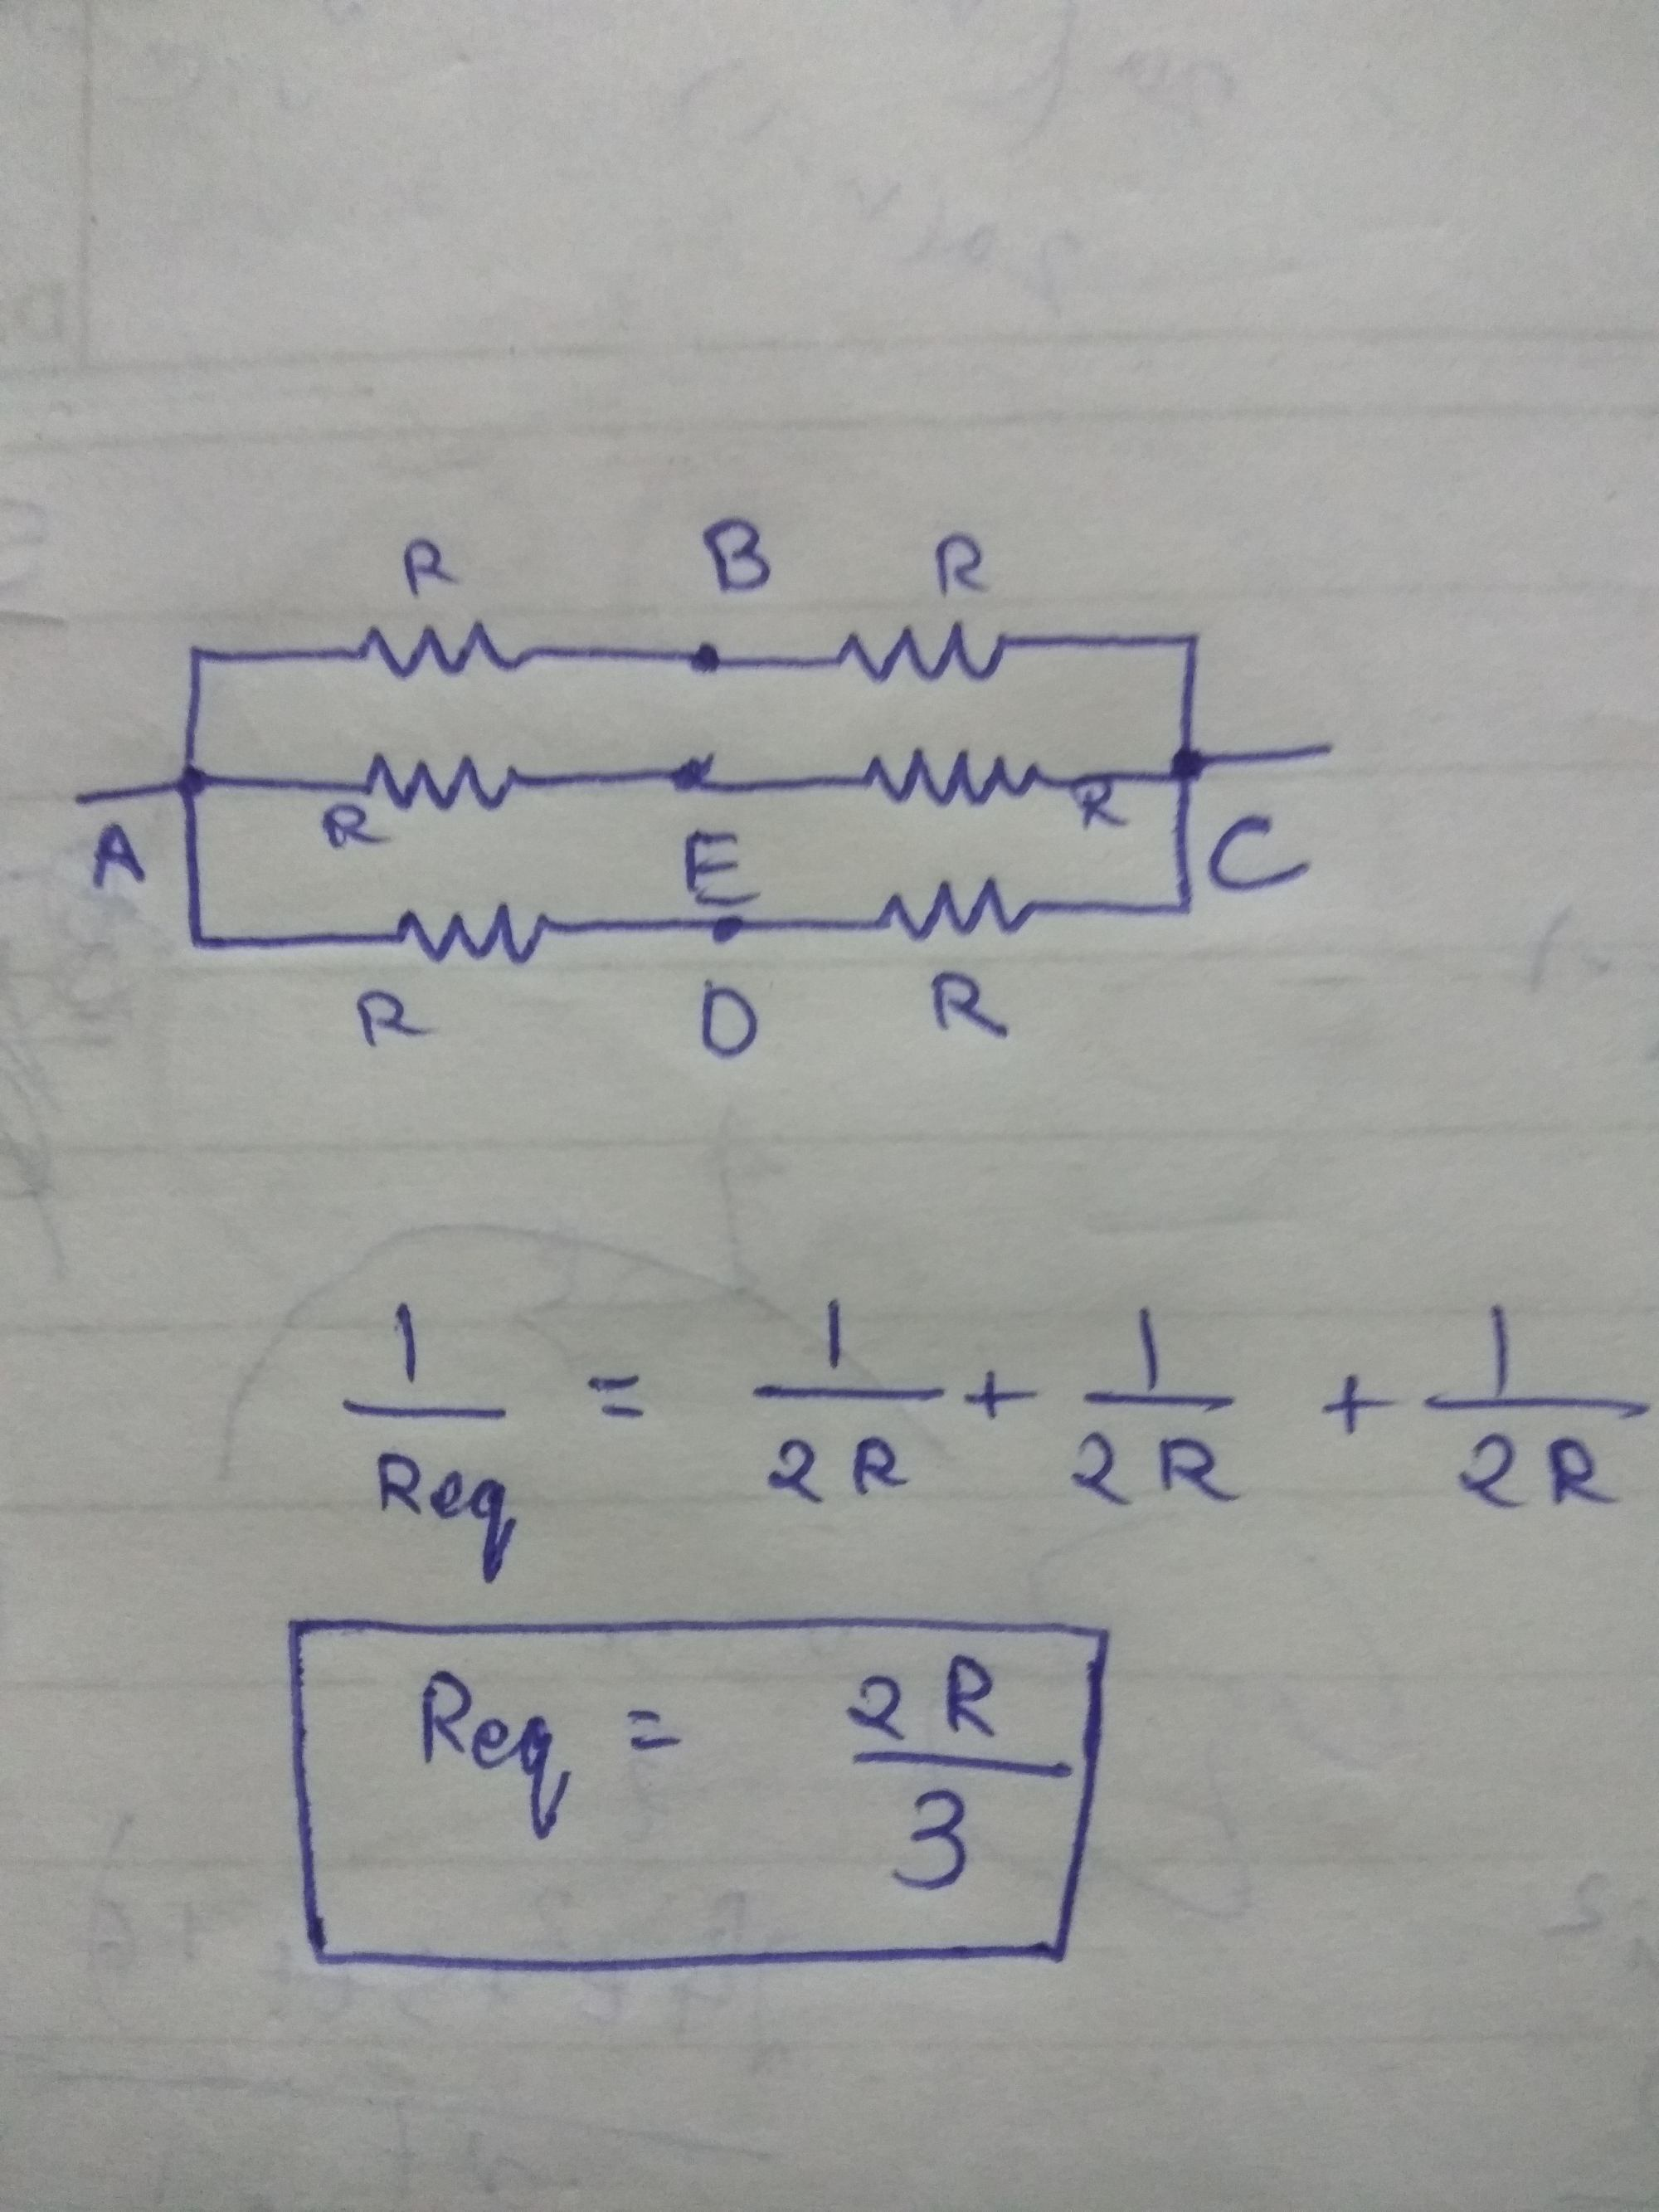 hight resolution of applying the formula for parallel resistors we get the equivalent resistance of the circuit as 2r 3